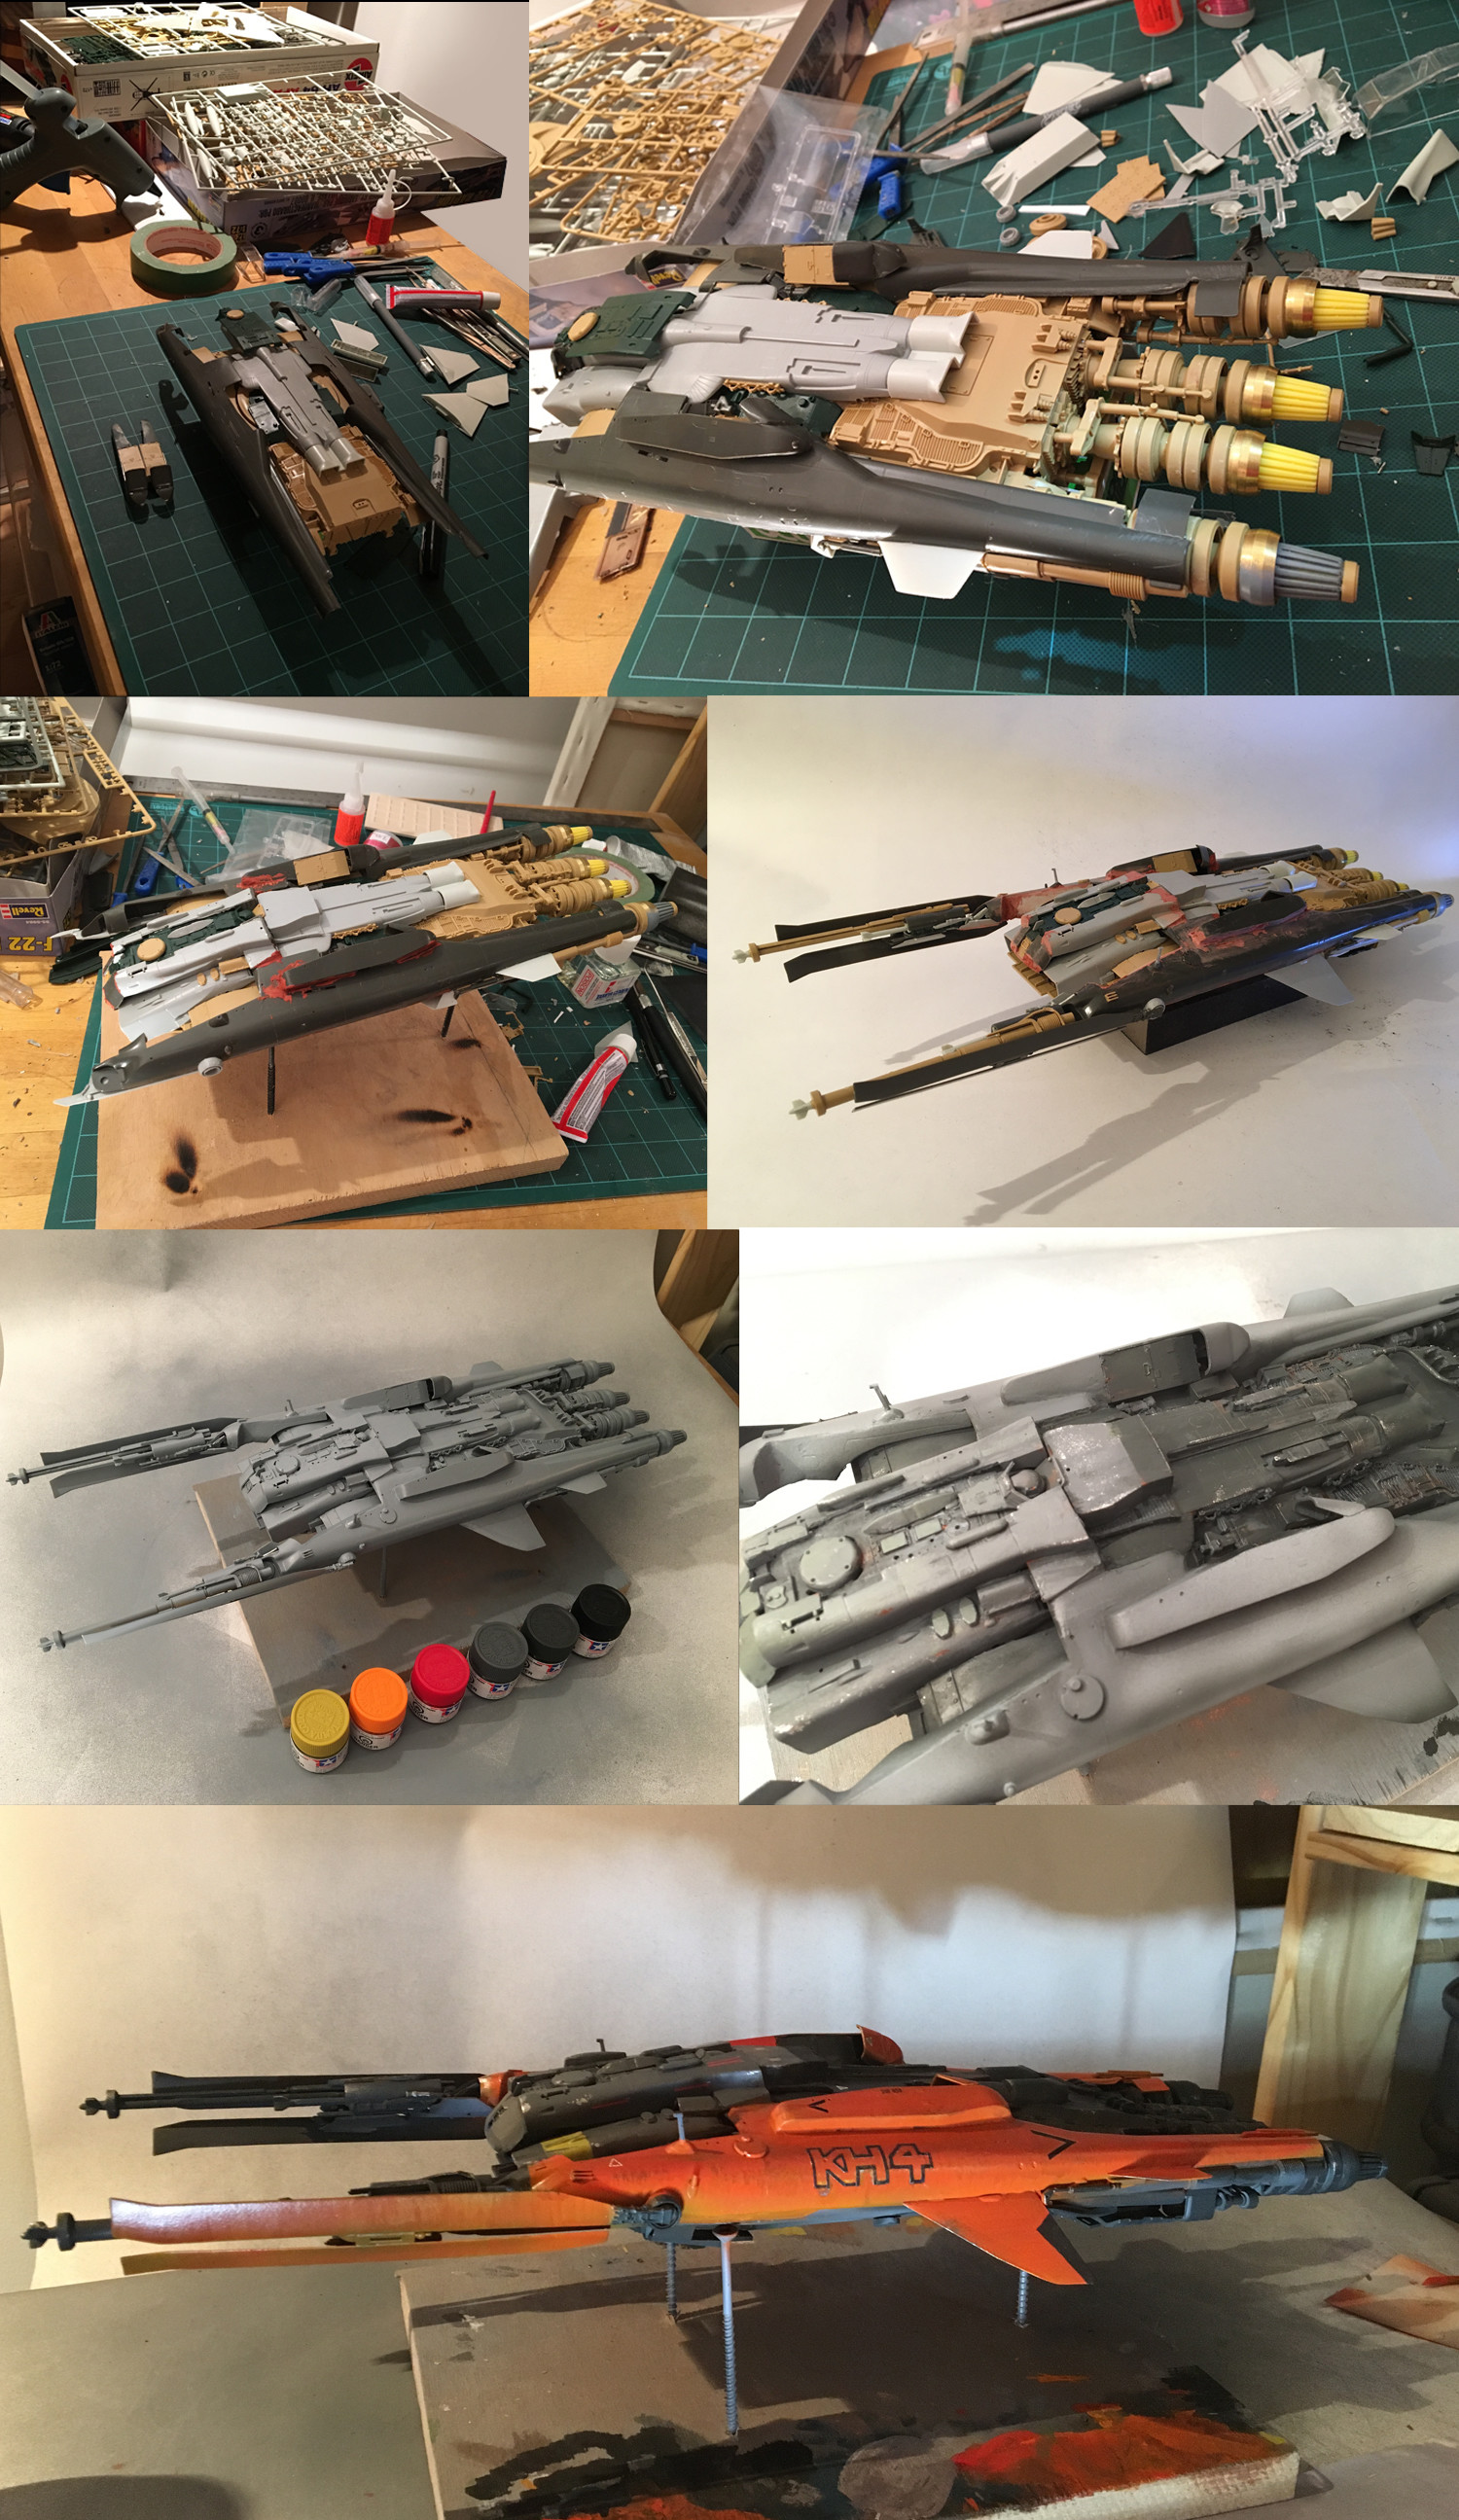 Martin deschambault project 77 kh4 kitbash